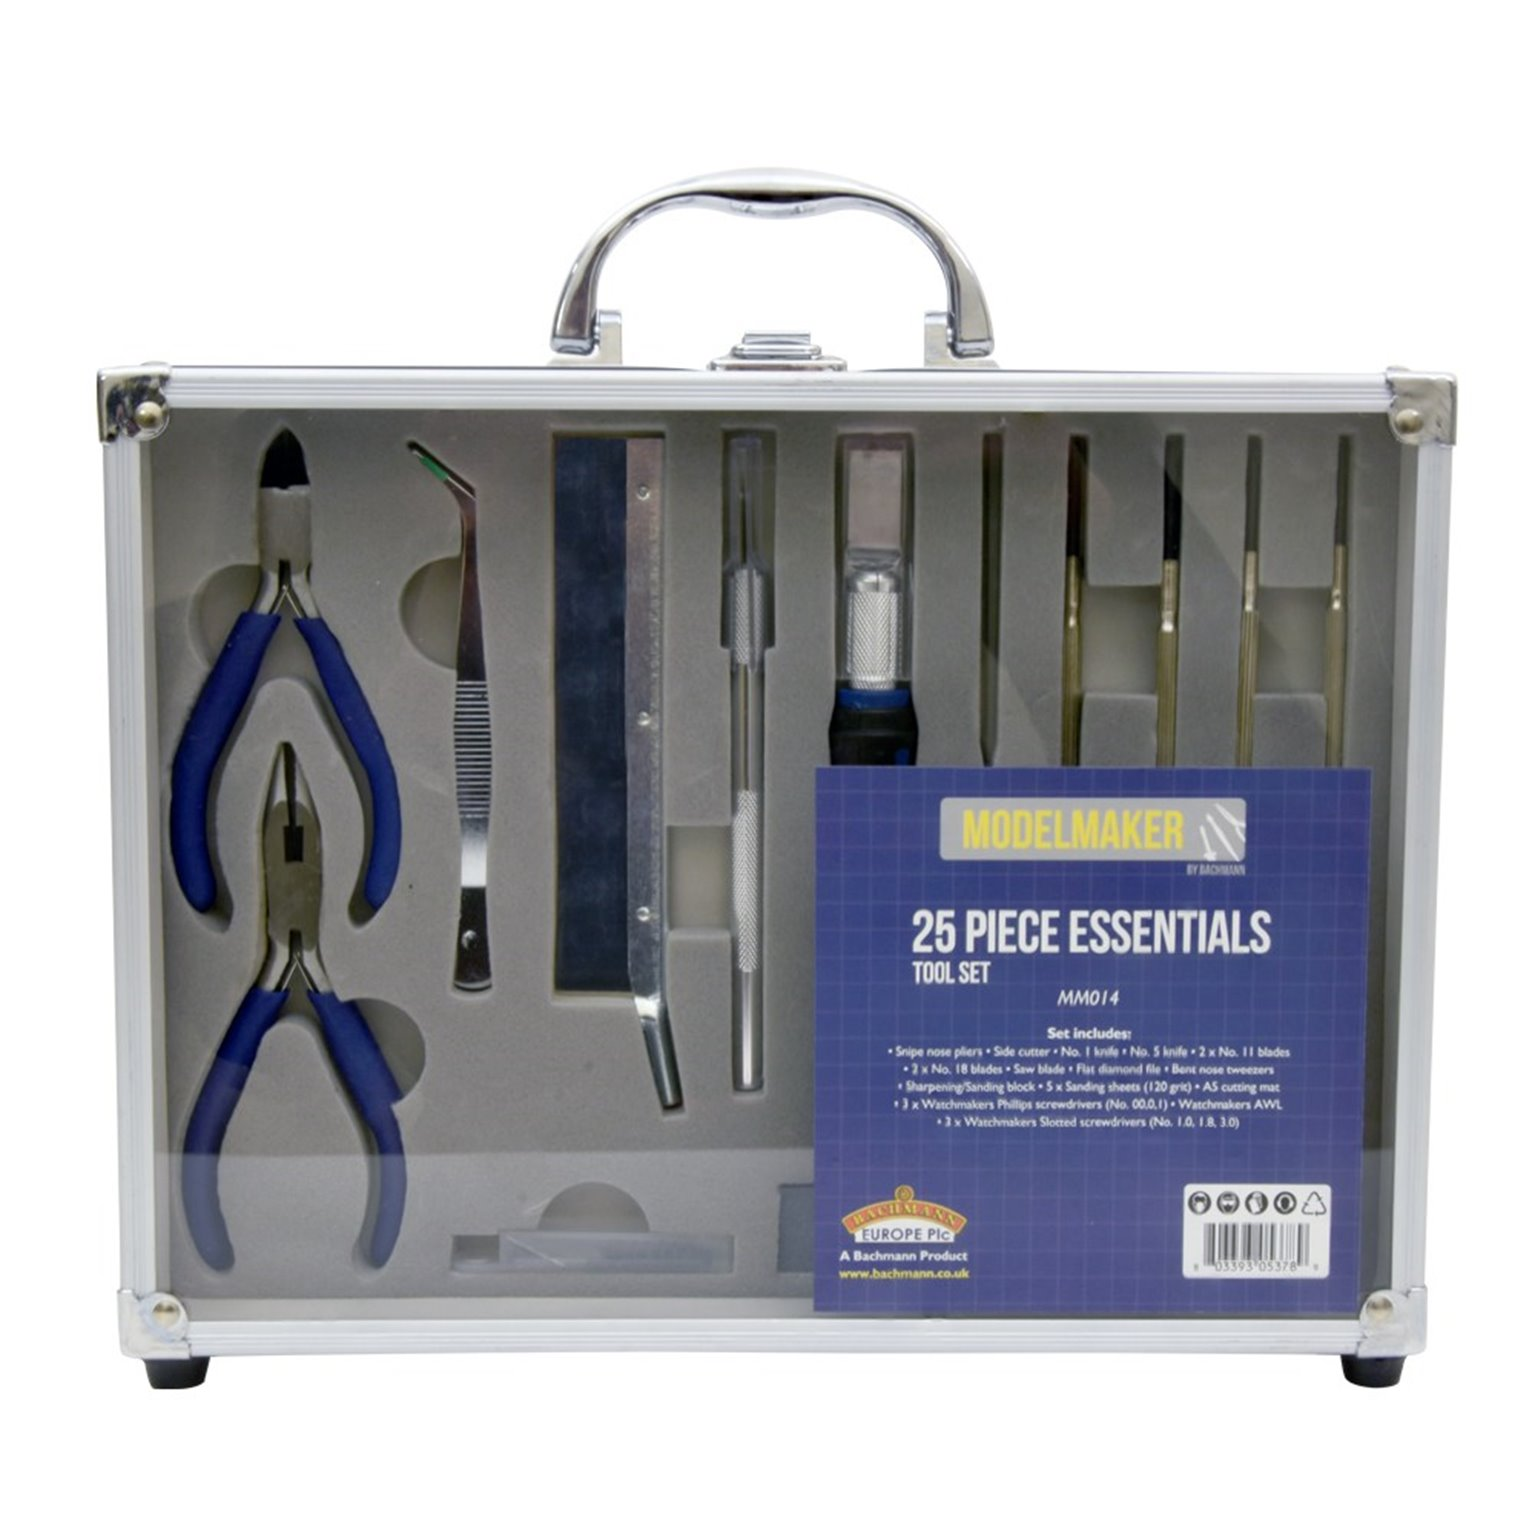 25 Piece Essential Model Maker Tool Set